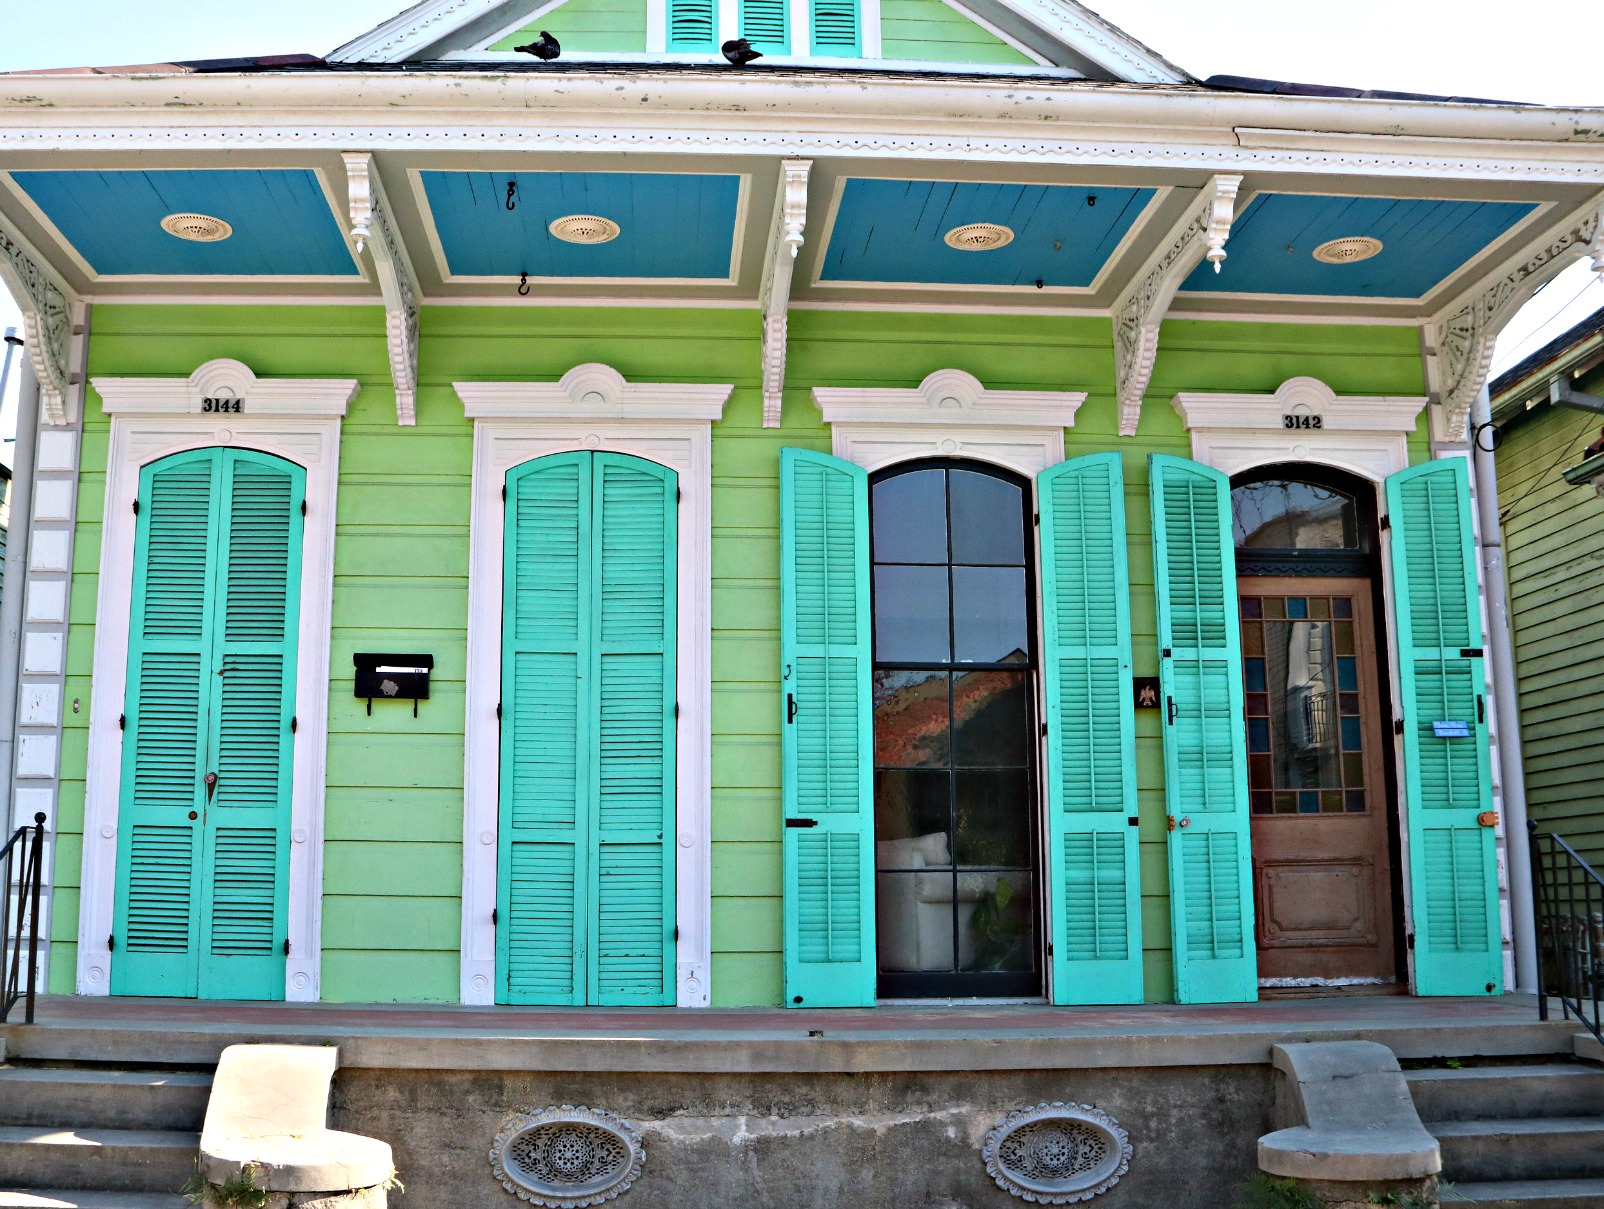 homes more windows doors and shutters on the street you see more and more attractive colors and more time spent by owners to show off their homes and